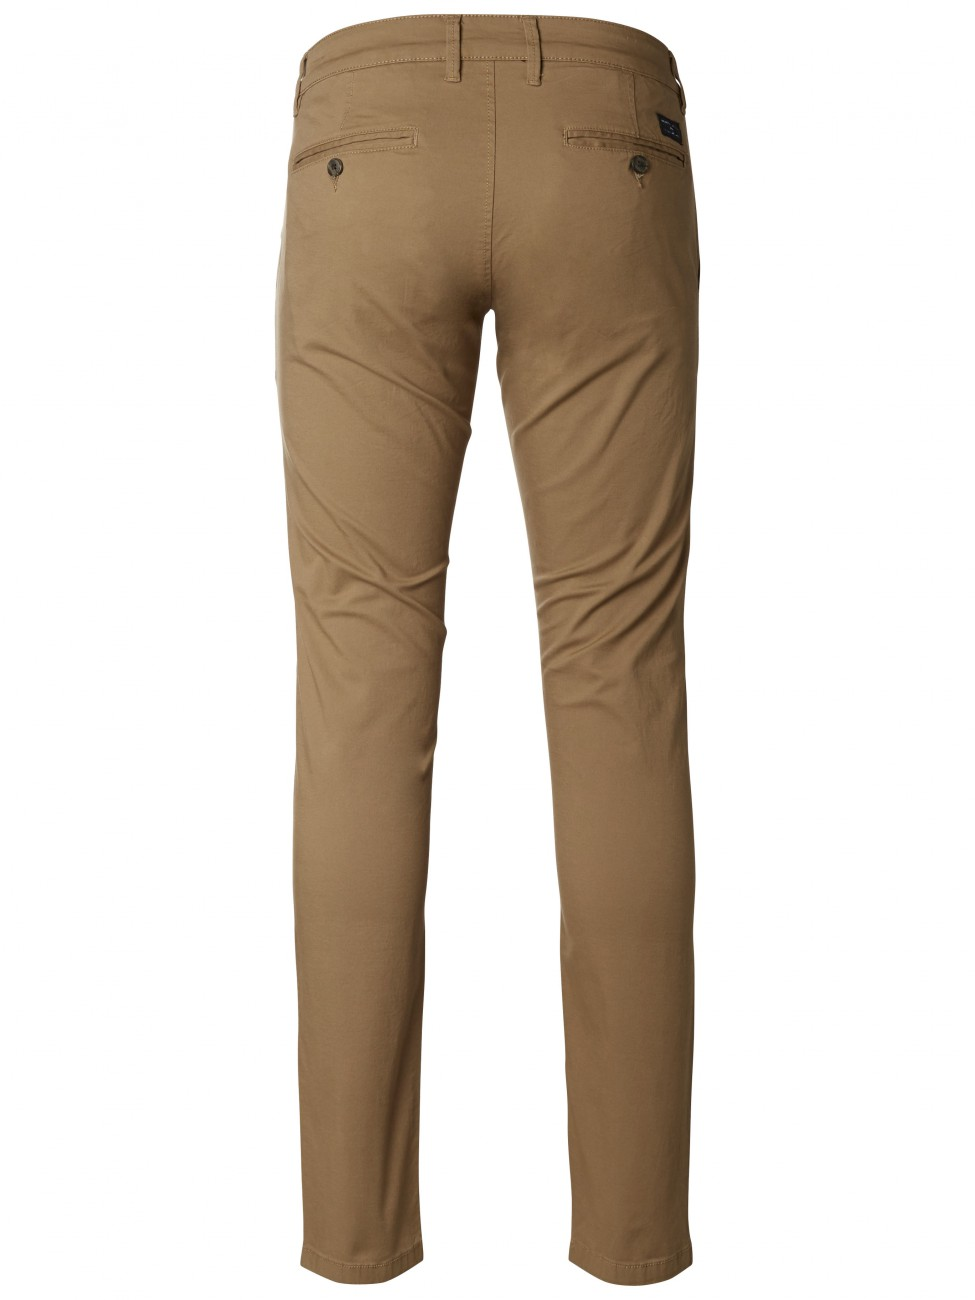 Selected Herren Chino Hose SHHTHREEPARIS - Camel